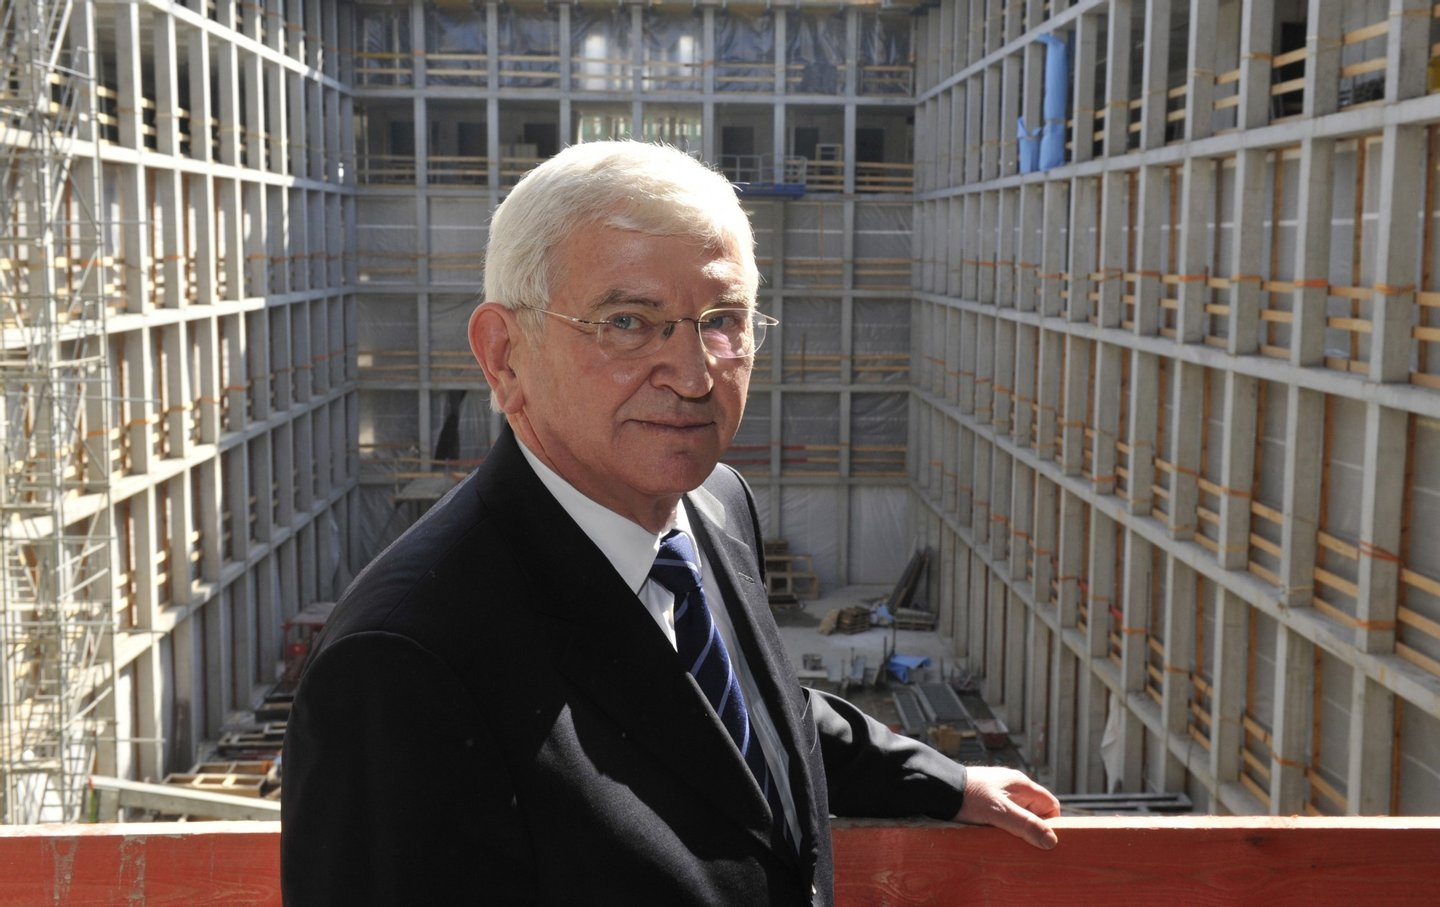 Ernst Uhrlau, head of the German intelligence service, the BND, poses for photographers as he attended a topping-out ceremony for the new German Intelligence service building March 25, 2010 in Berlin. The new headquarters, located in the city's heart, will cost approximately 1.5 billion euros and is expected to be completed by 2014. AFP PHOTO / JOHN MACDOUGALL (Photo credit should read JOHN MACDOUGALL/AFP/Getty Images)